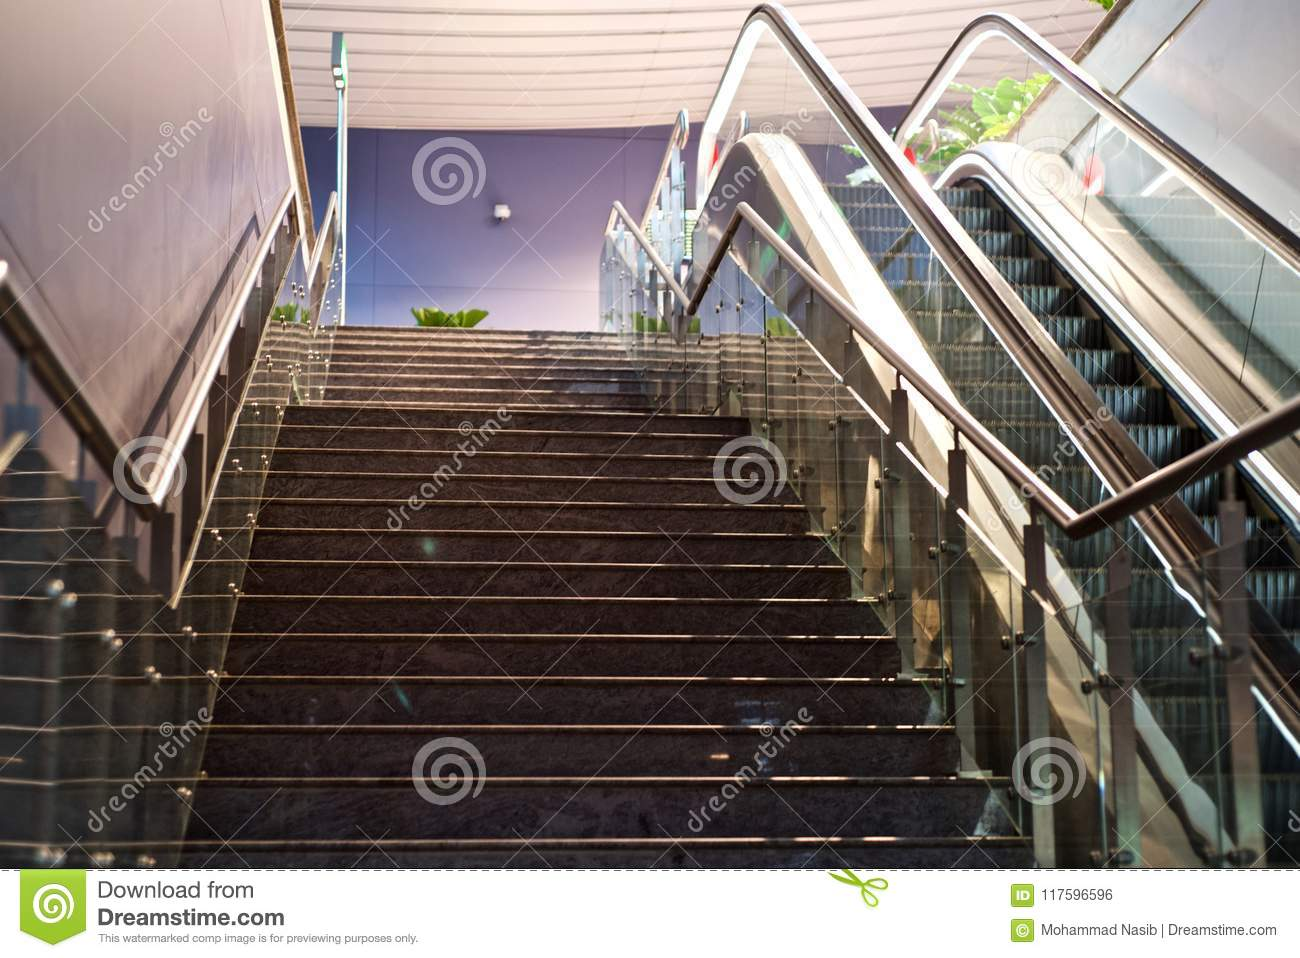 Download Stylish Stairs And A Escalator Lift Of A Shopping Mall Unique Photo Stock Photo - Image of mall, abstract: 117596596